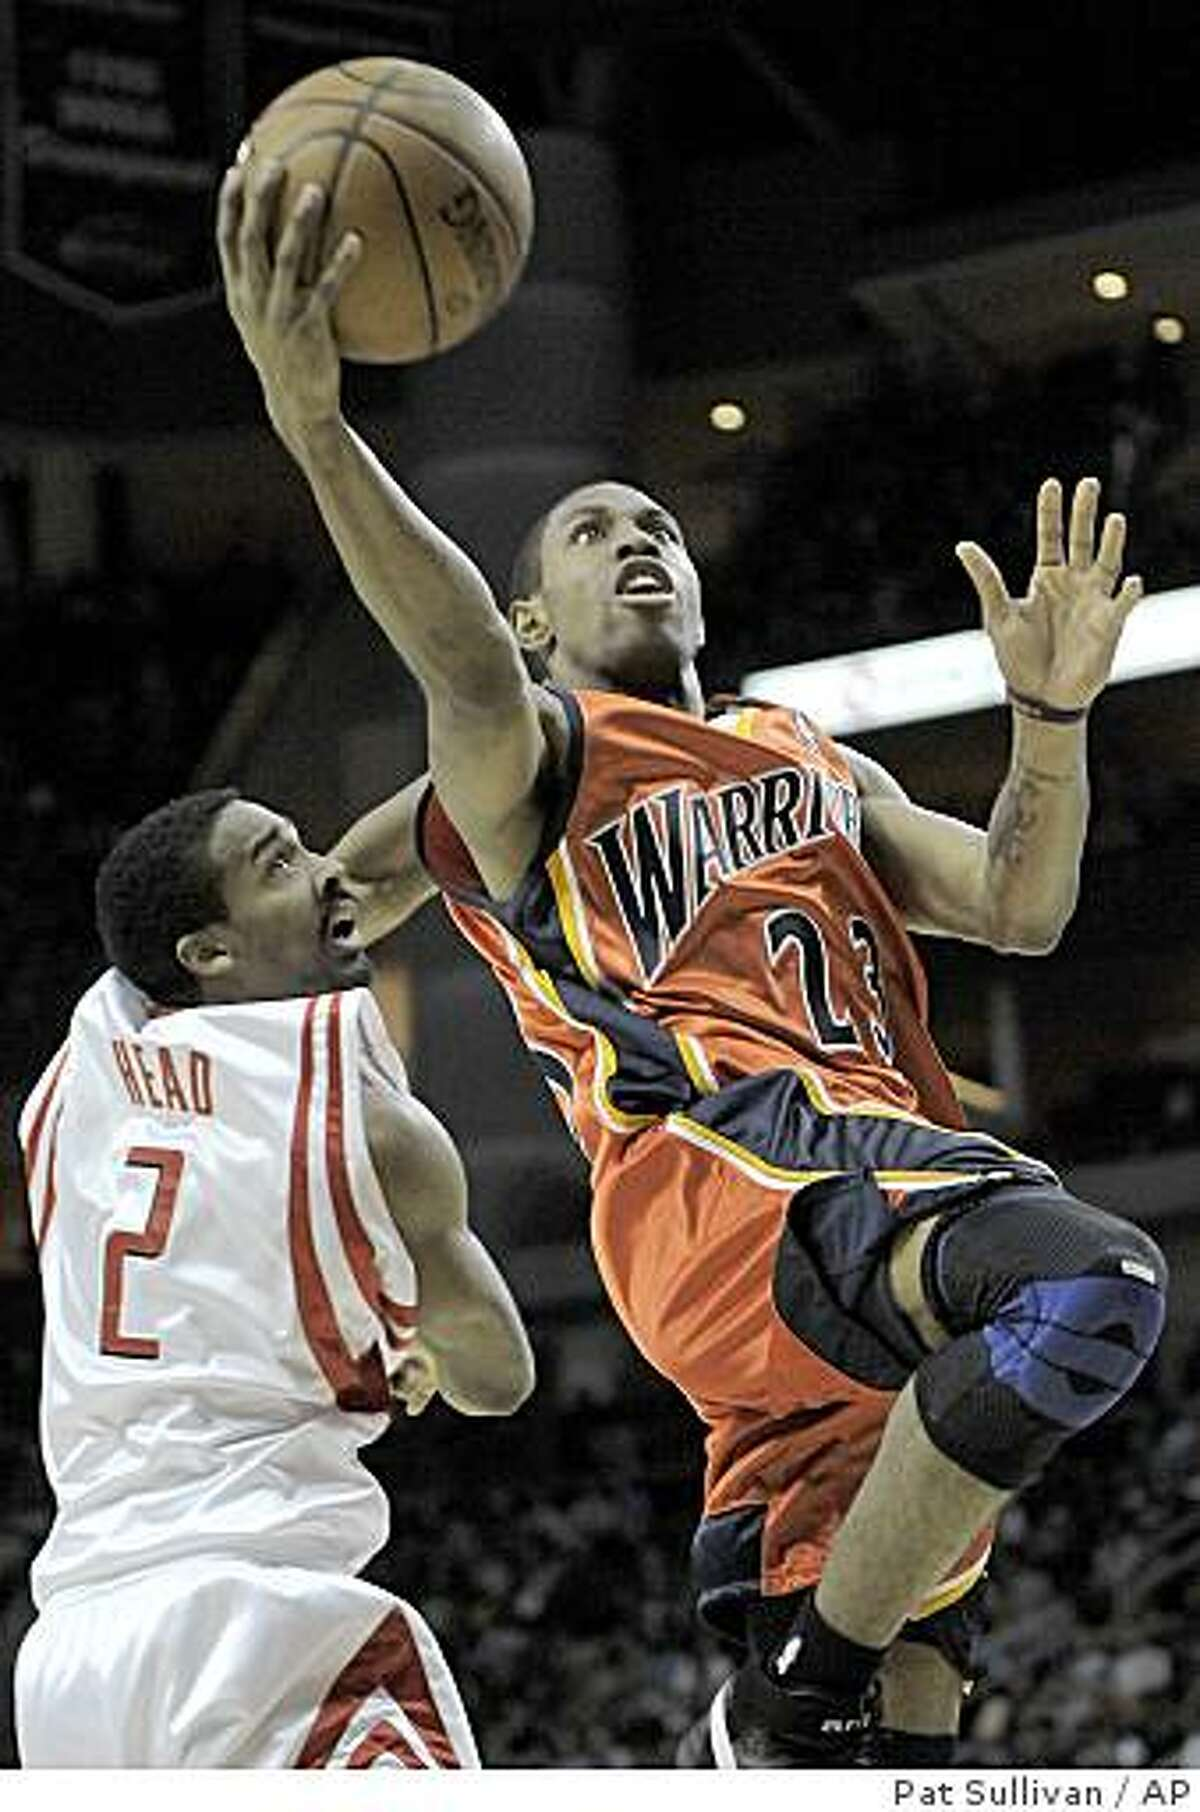 Golden State Warriors' C.J. Watson (23) goes for two points over Houston Rockets defender Luther Head (2) during the first half of a basketball game Tuesday, Jan. 29, 2008 in Houston. (AP Photo/Pat Sullivan)